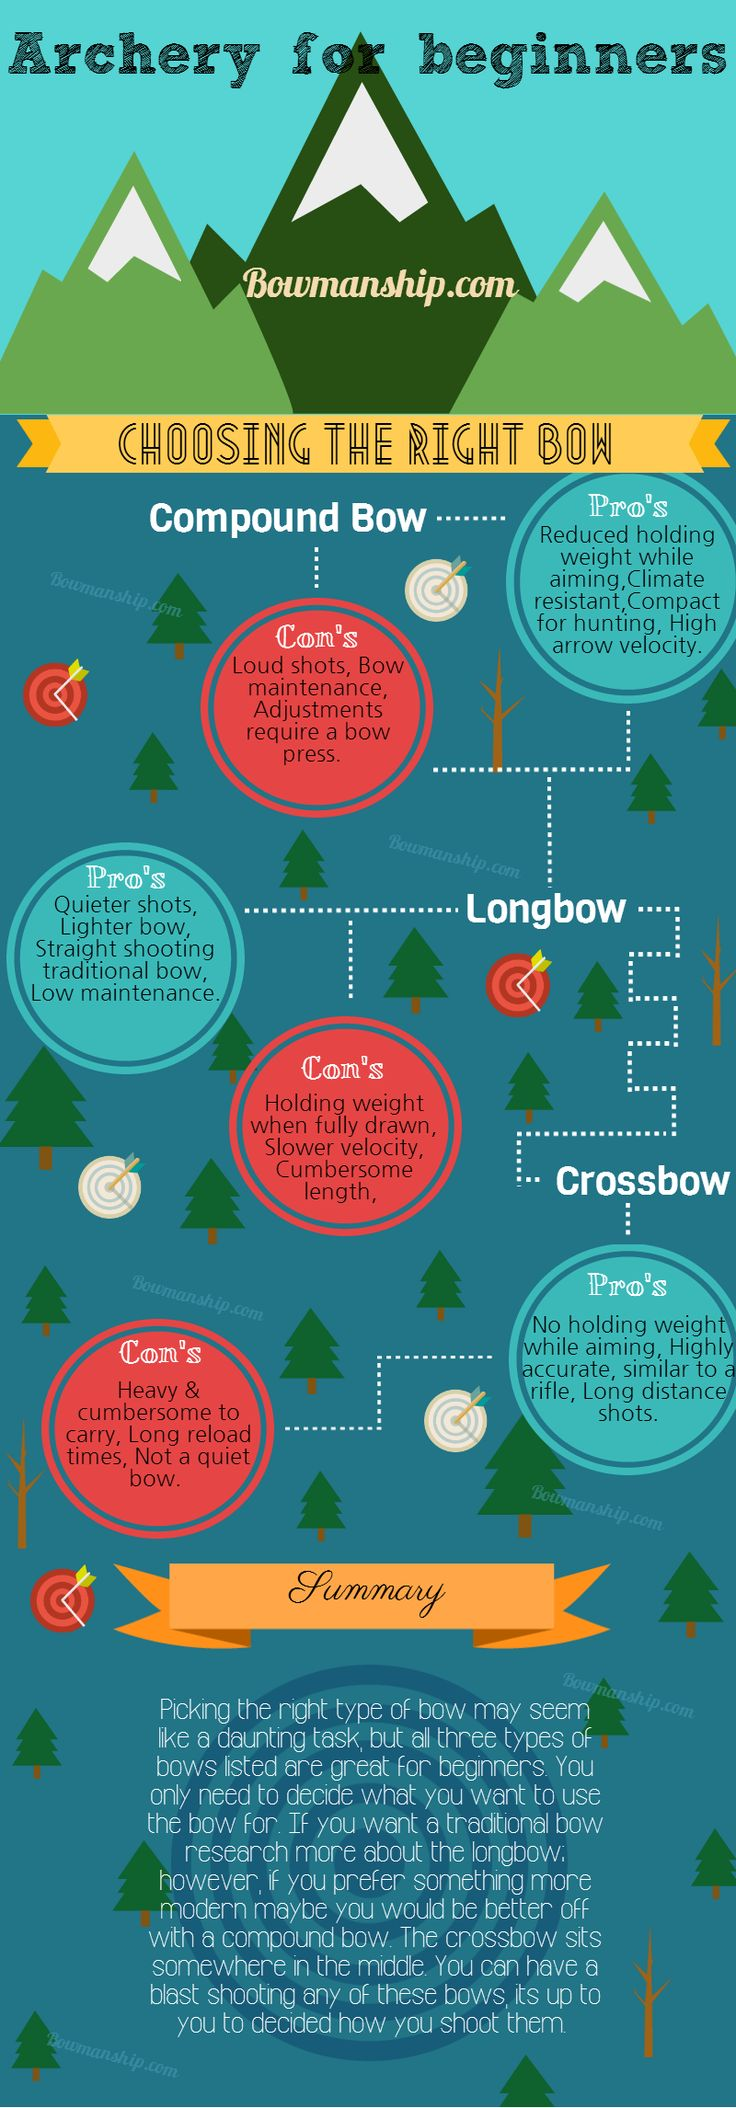 ARCHERY FOR BEGINNERS -  Choosing your bow type.